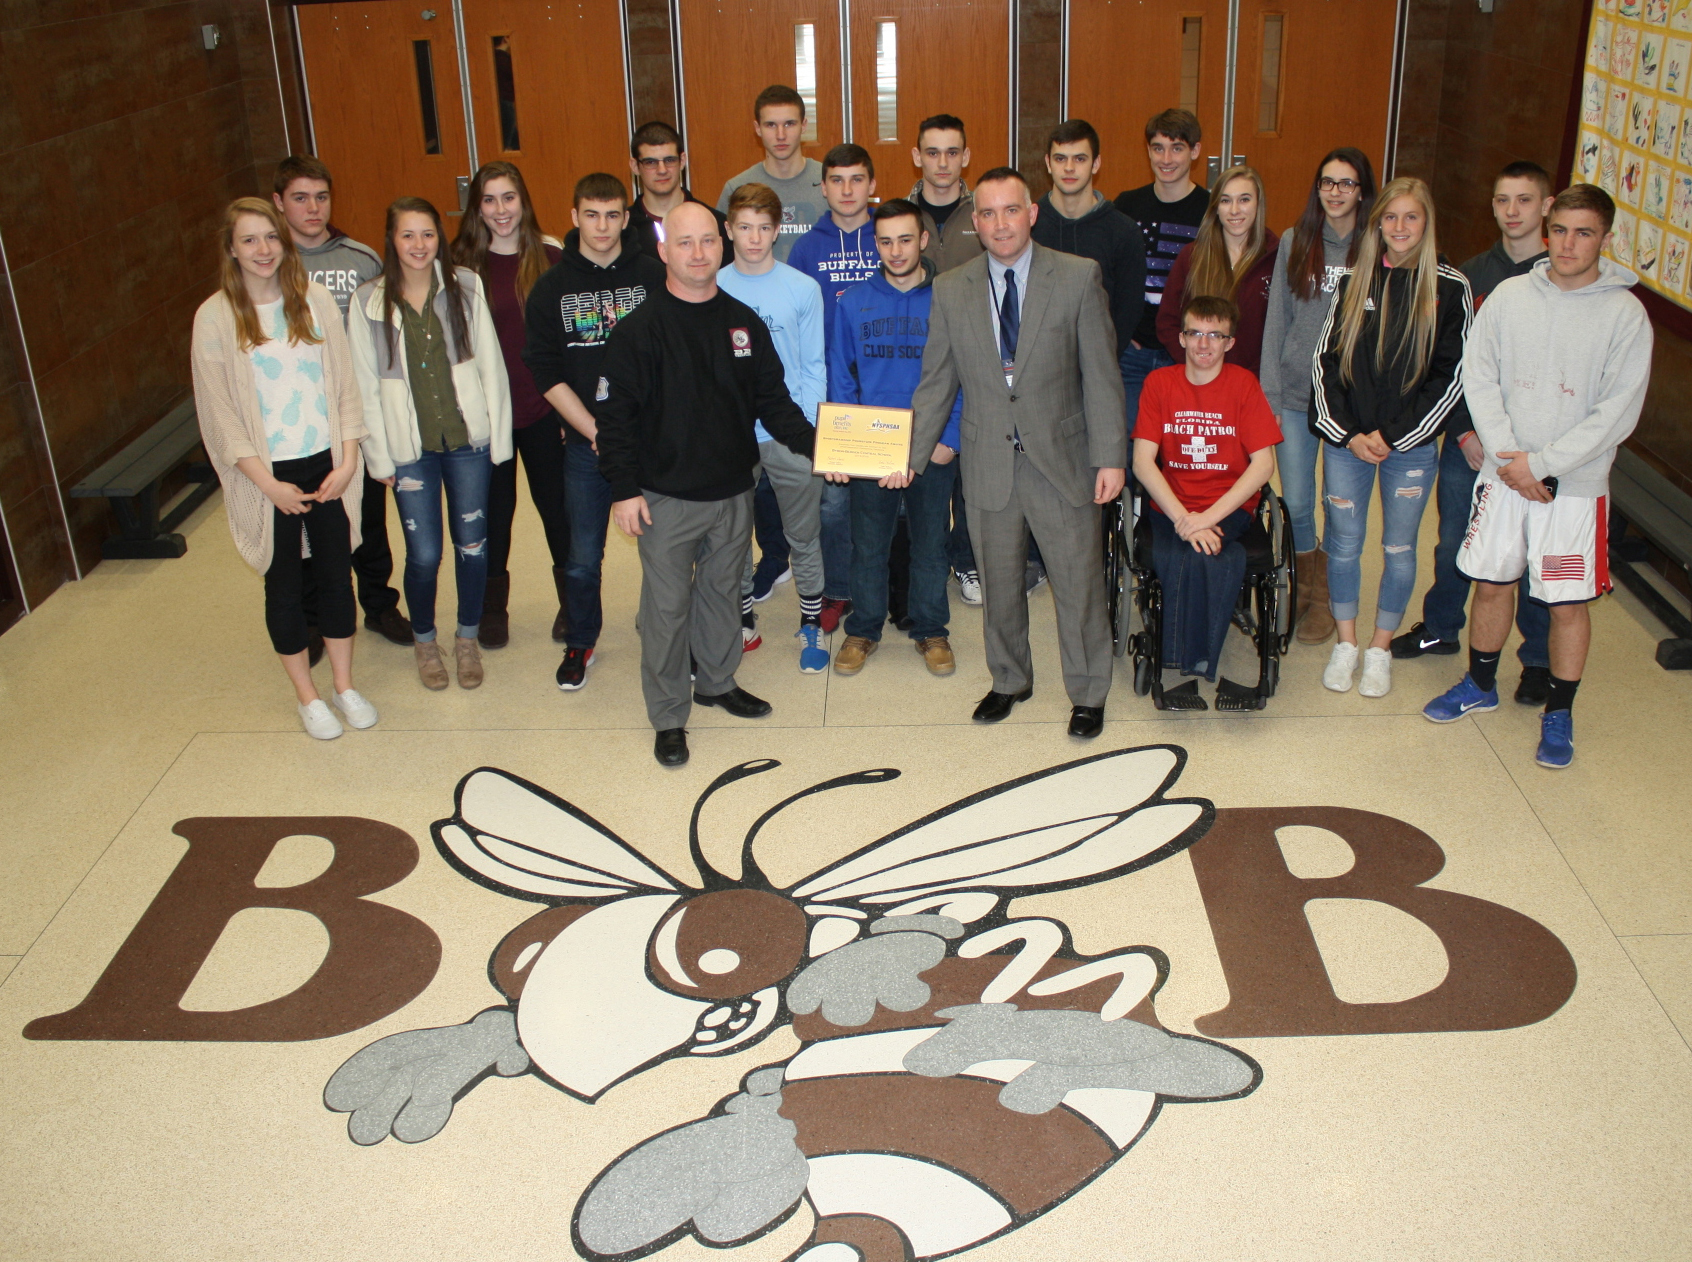 Representatives from the Byron-Bergen student athletic teams, along with Athletic Director Rich Hannan (l) and Junior/Senior High School Interim Principal Patrick McGee (r) proudly accept the NYSPHSAA Sportsmanship Promotion Program Award, which honors all players, coaches and spectators alike. Provided photo